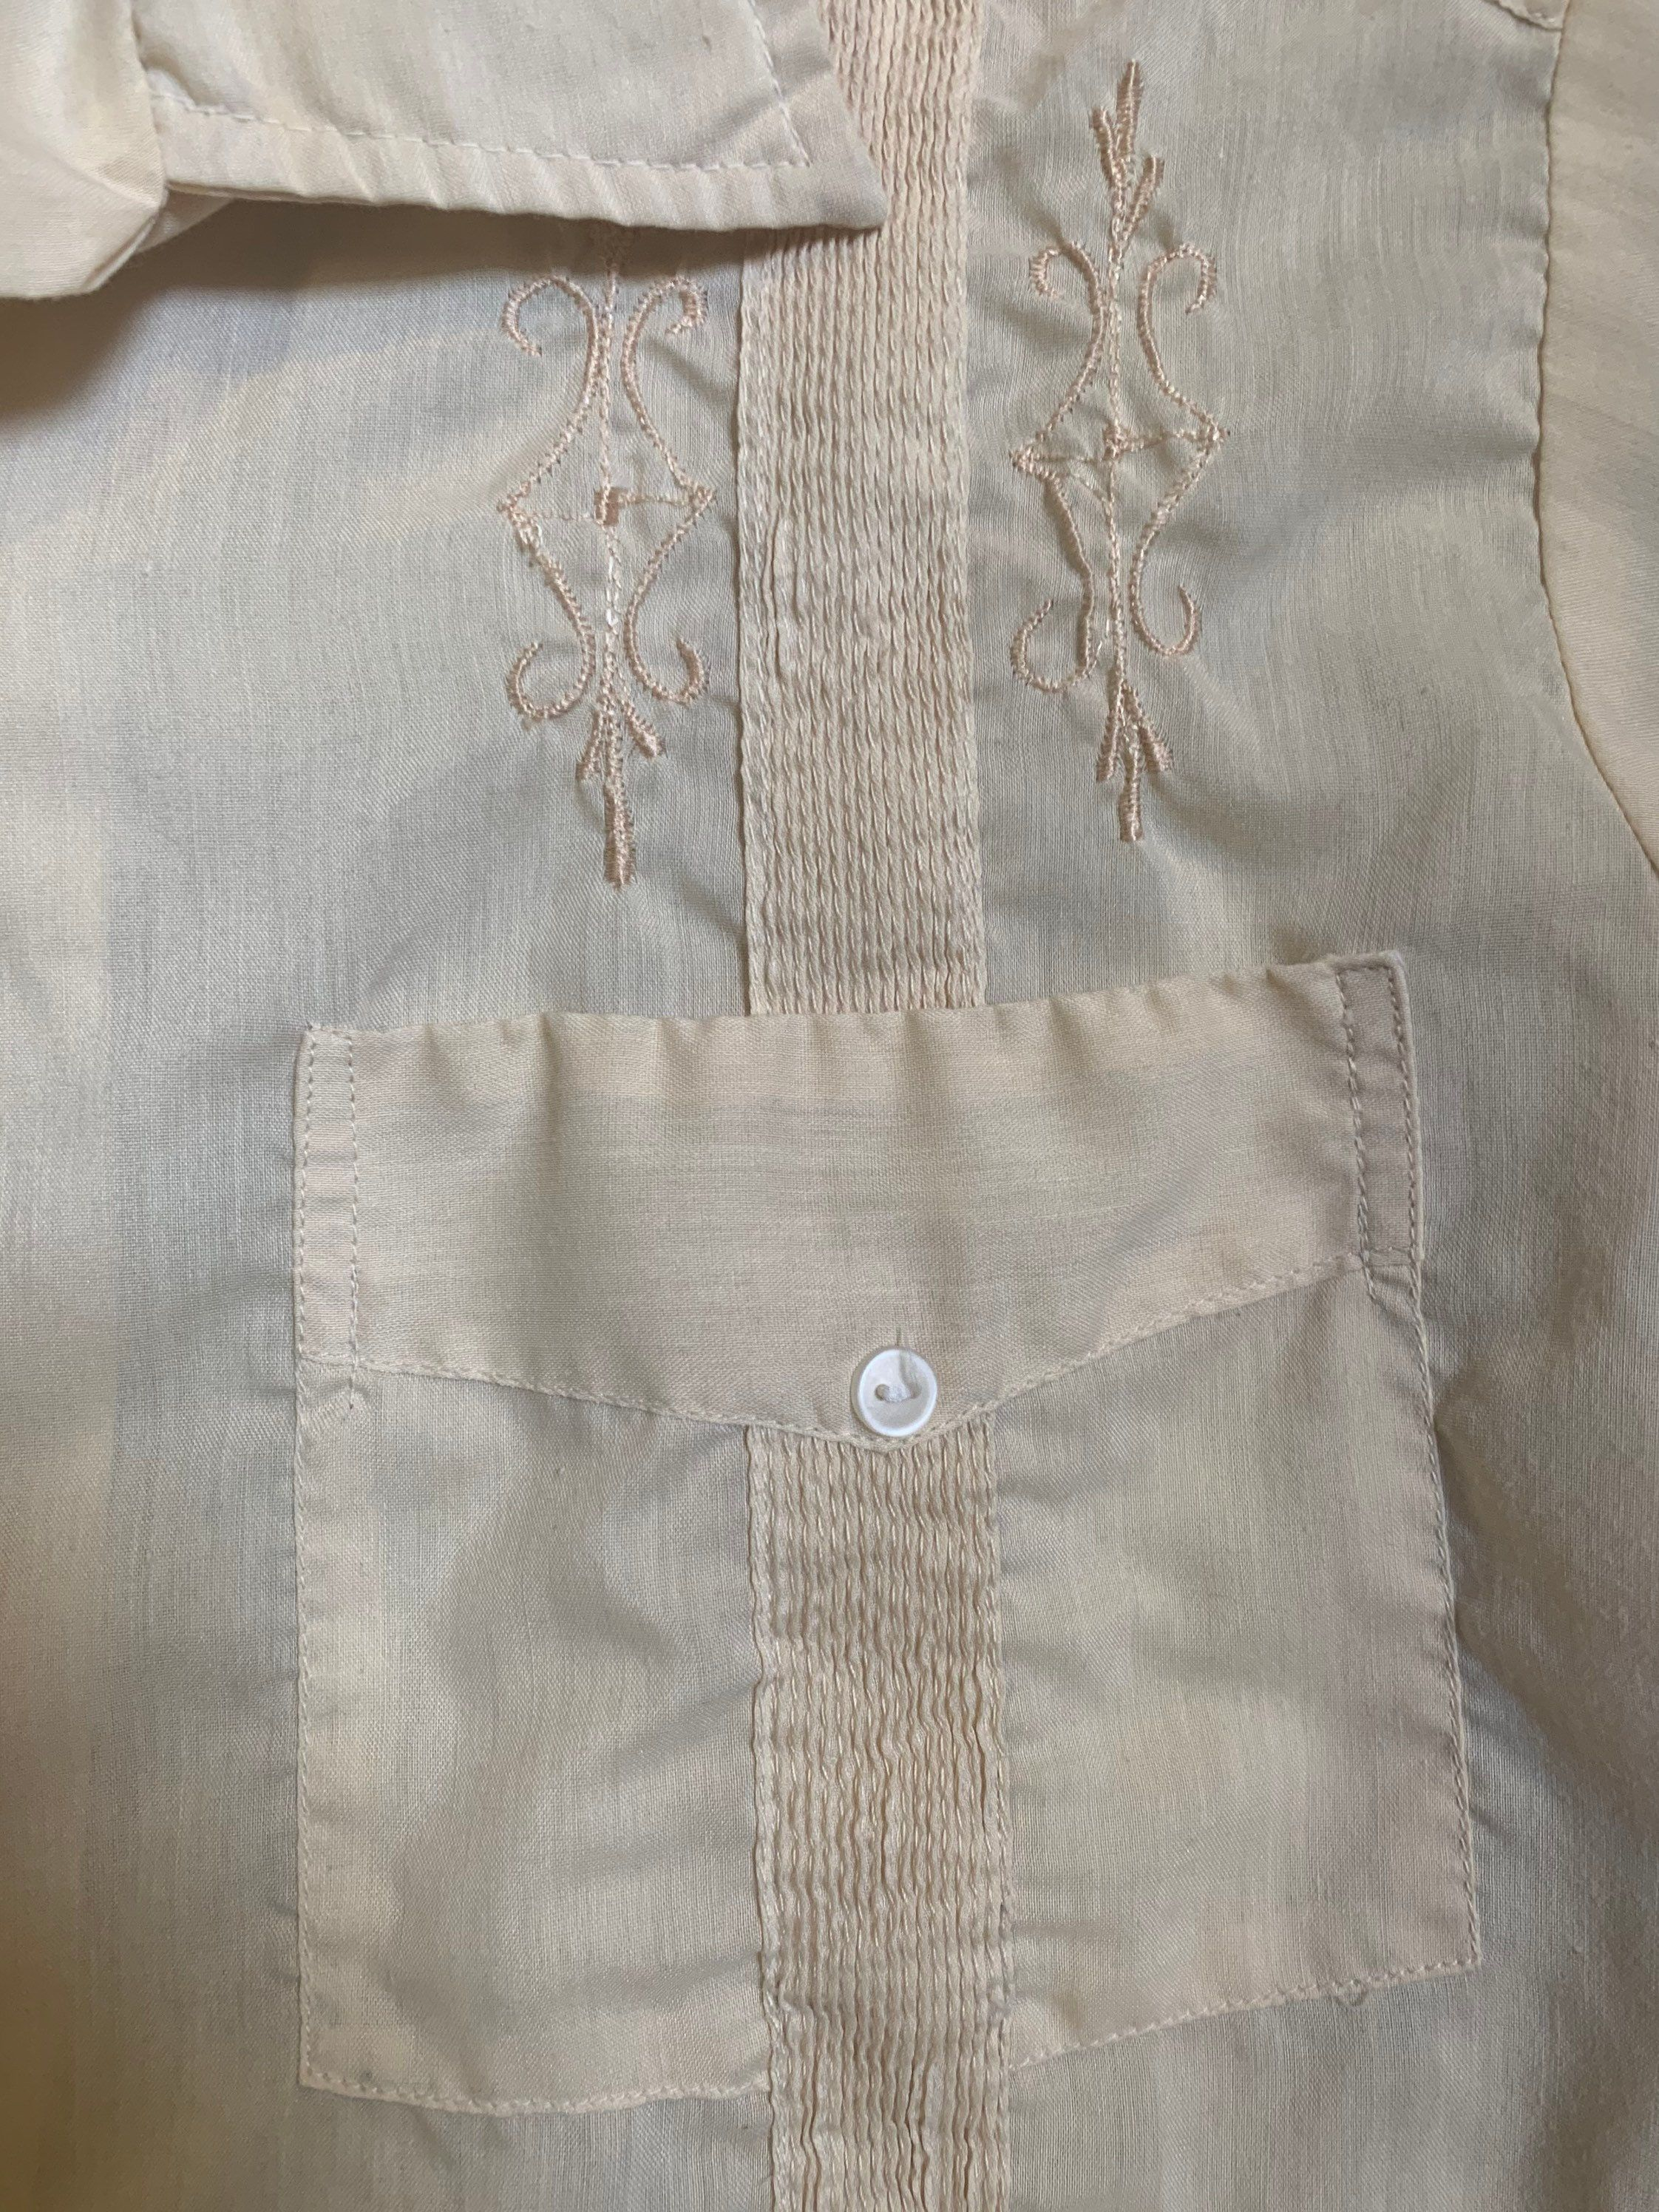 Lovely Guayabera shirt of the 1970s! Polyester and cotton blend. Nice detailing and rich cream color! Size extra large. Chest: 24.5 inches across Waist: 24 inches across Entire length of garment: 28 inches Shoulder to shoulder on back: 20 inches across